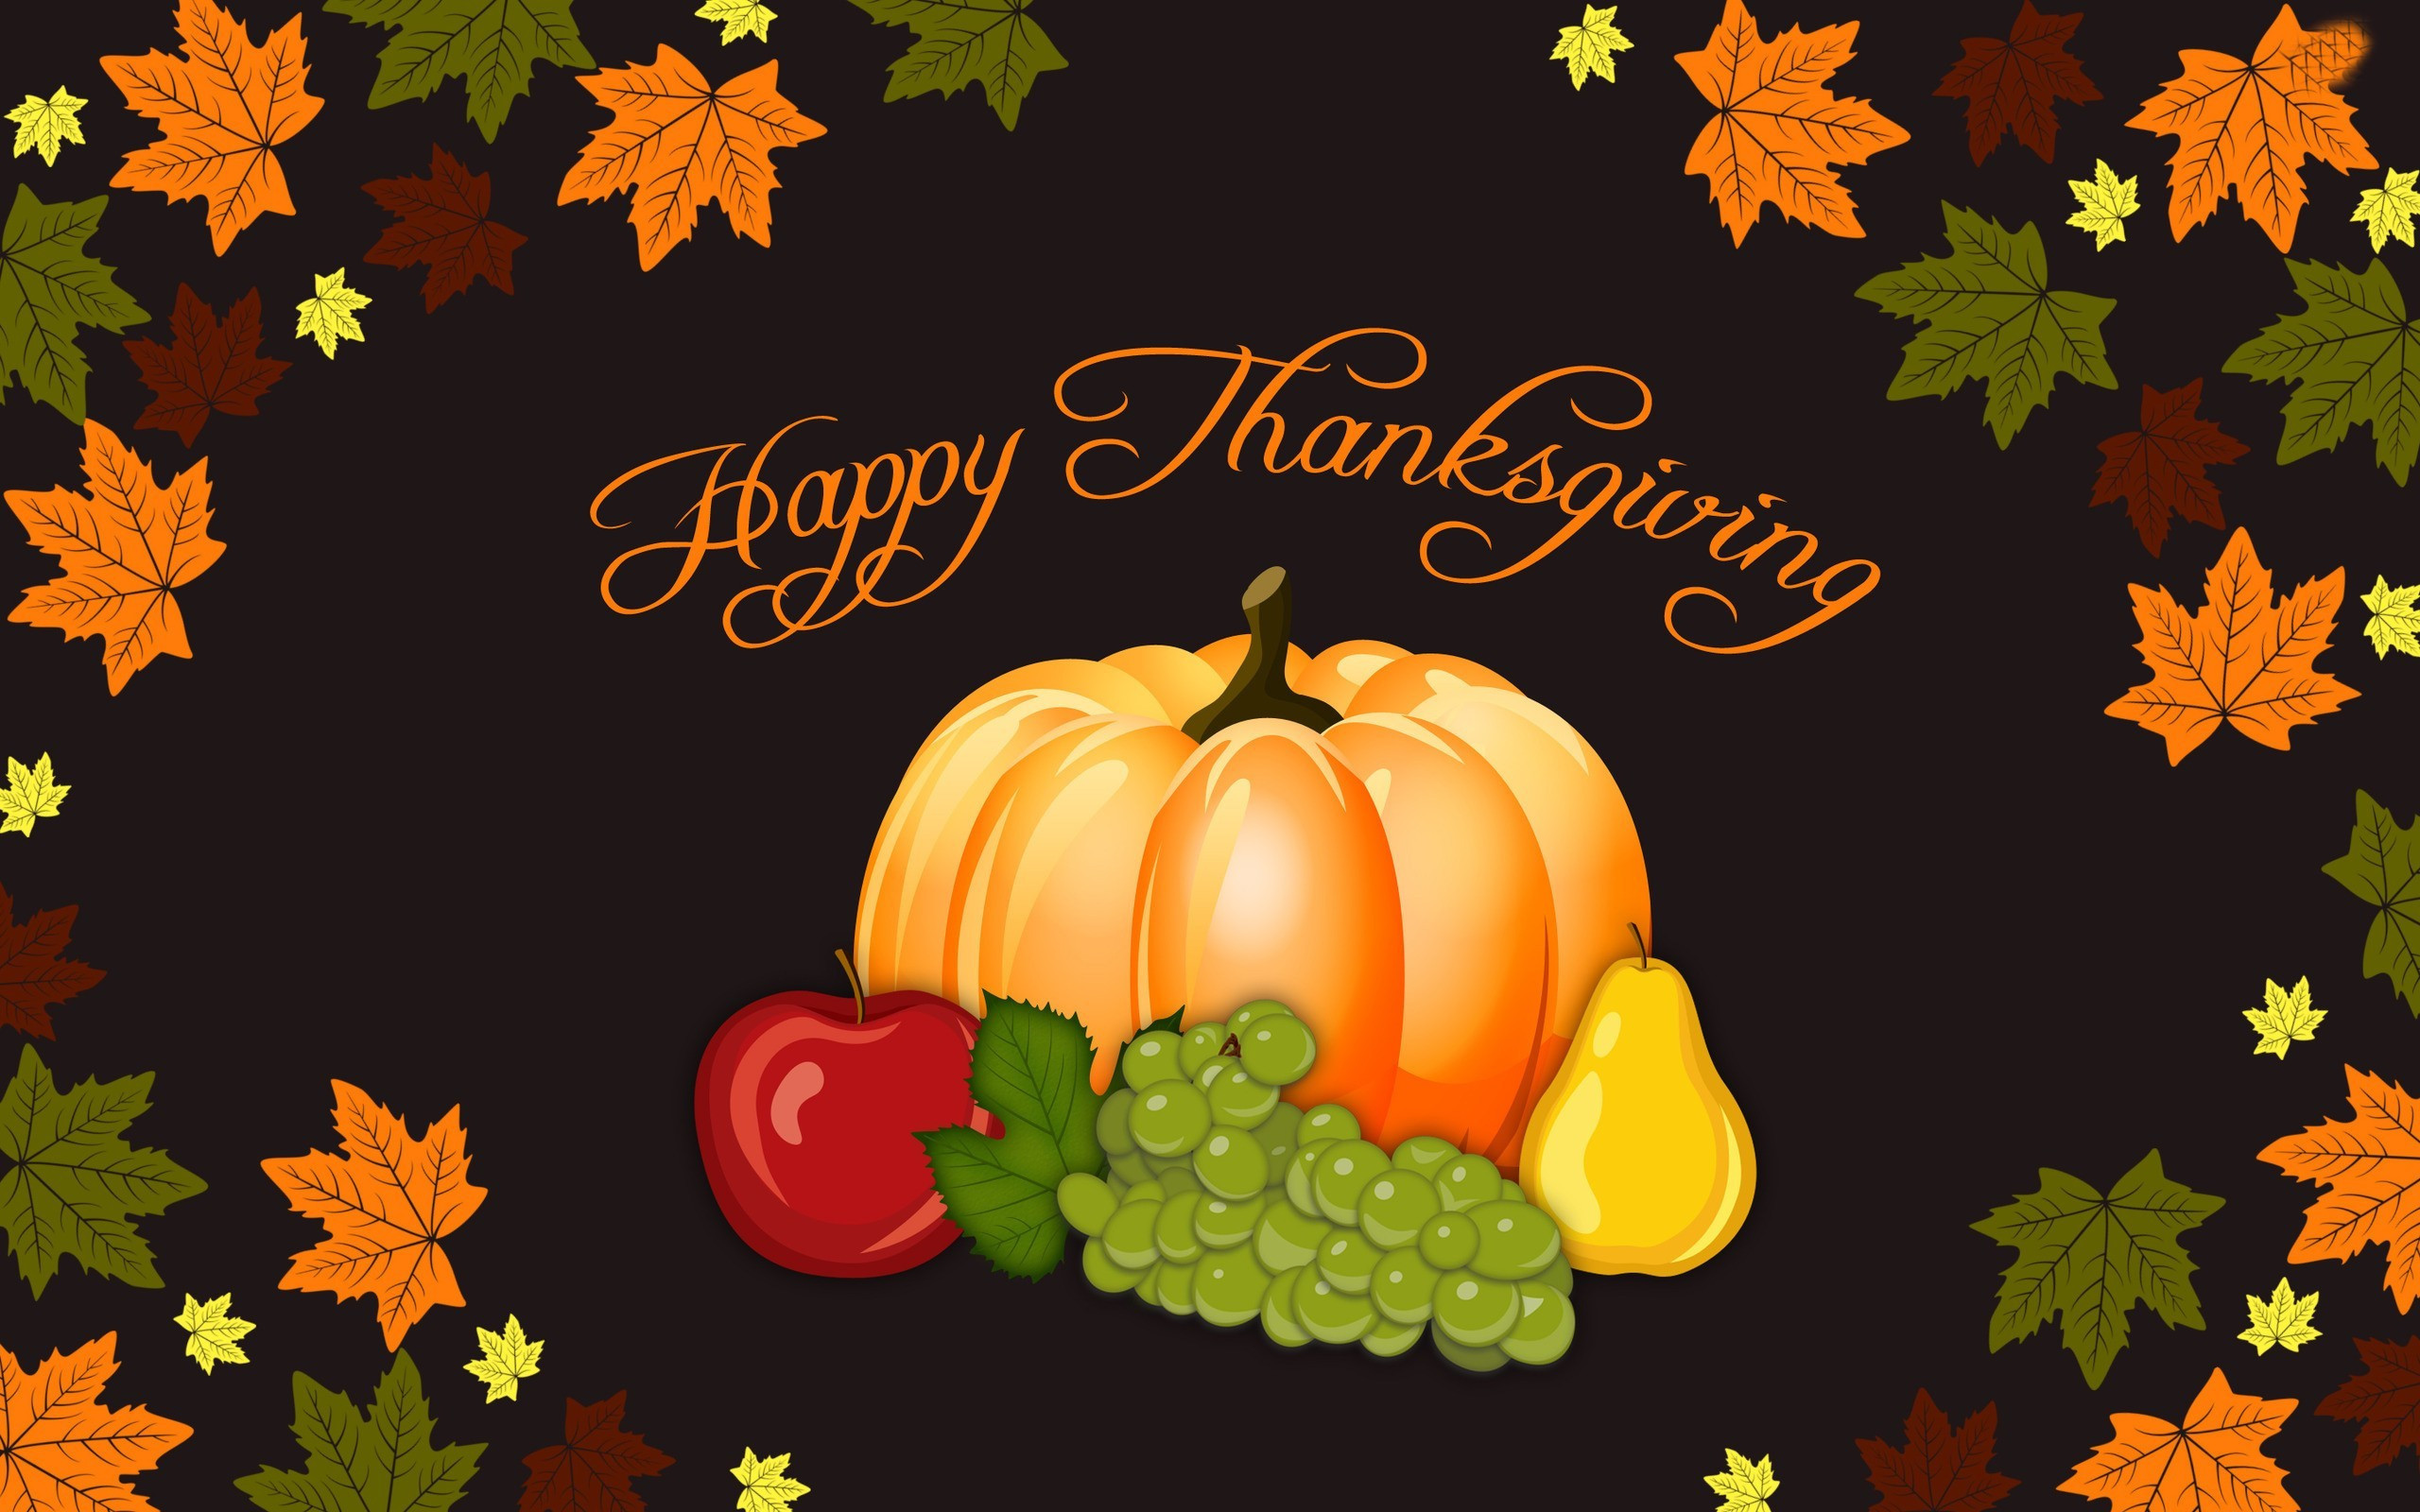 Thanksgiving Turkey Pictures Free  Happy Thanksgiving Day Wallpapers & 2017